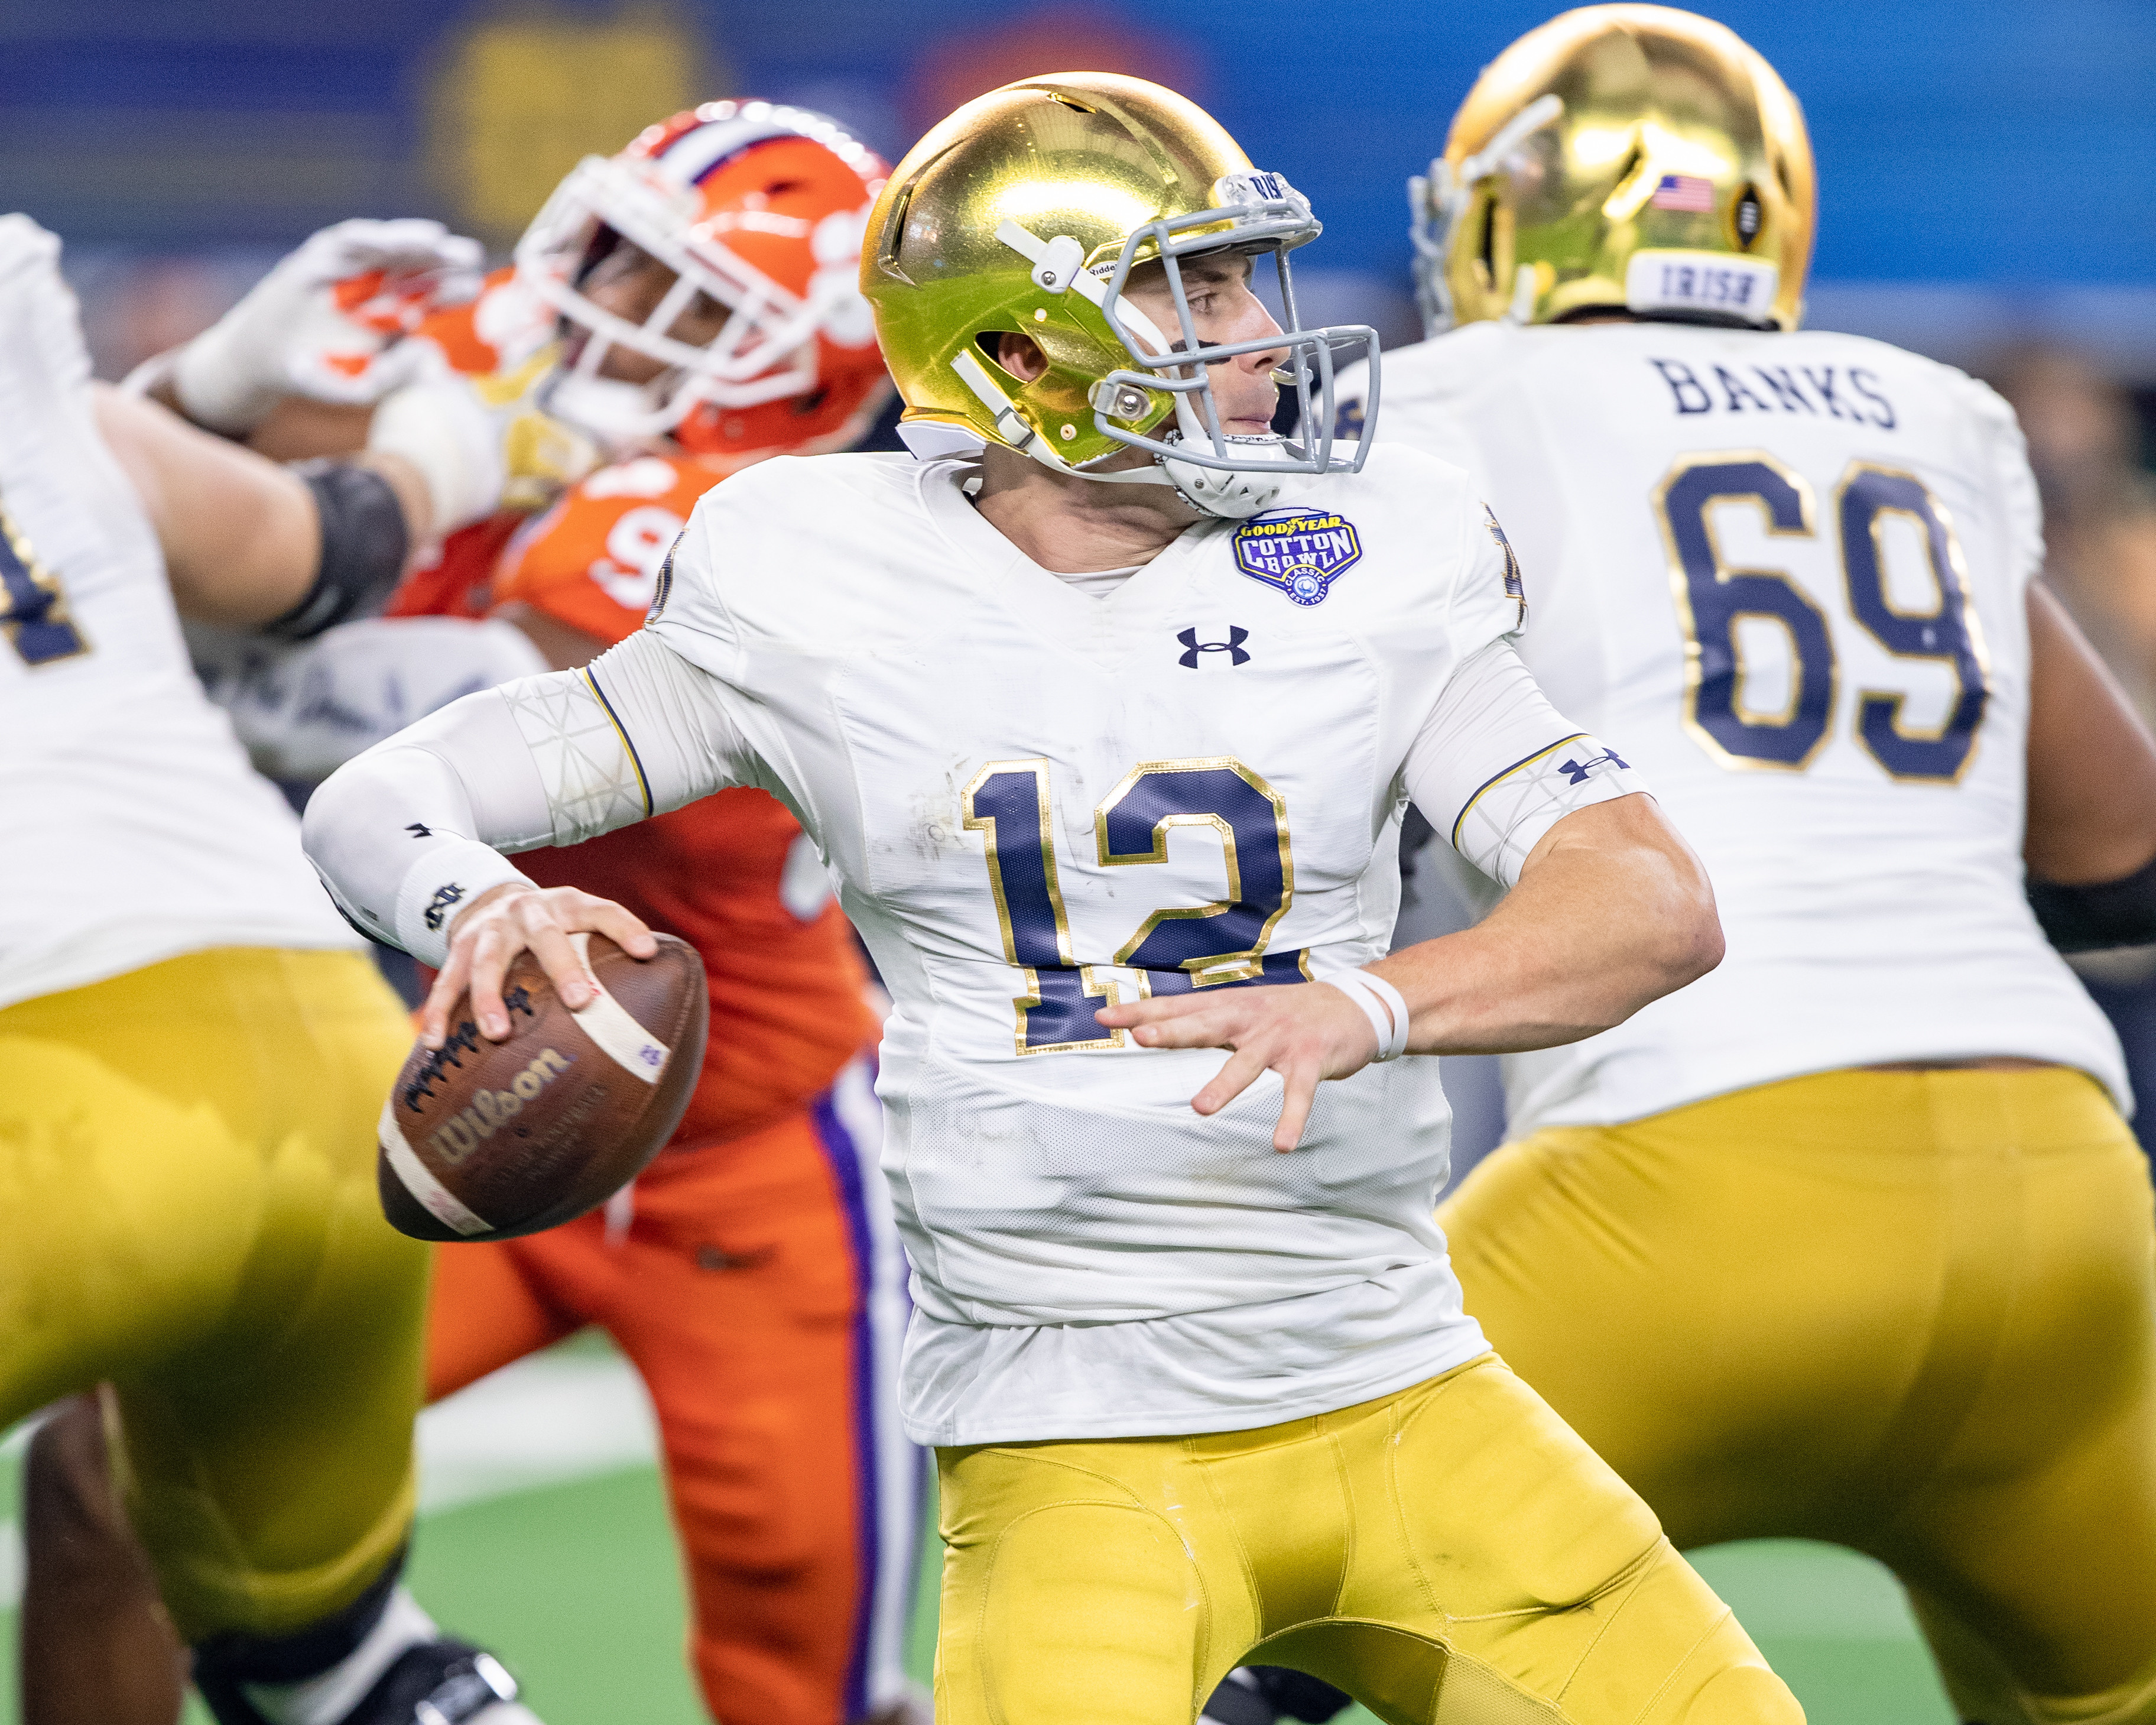 Notre Dame a double-digit underdog at Georgia on Saturday